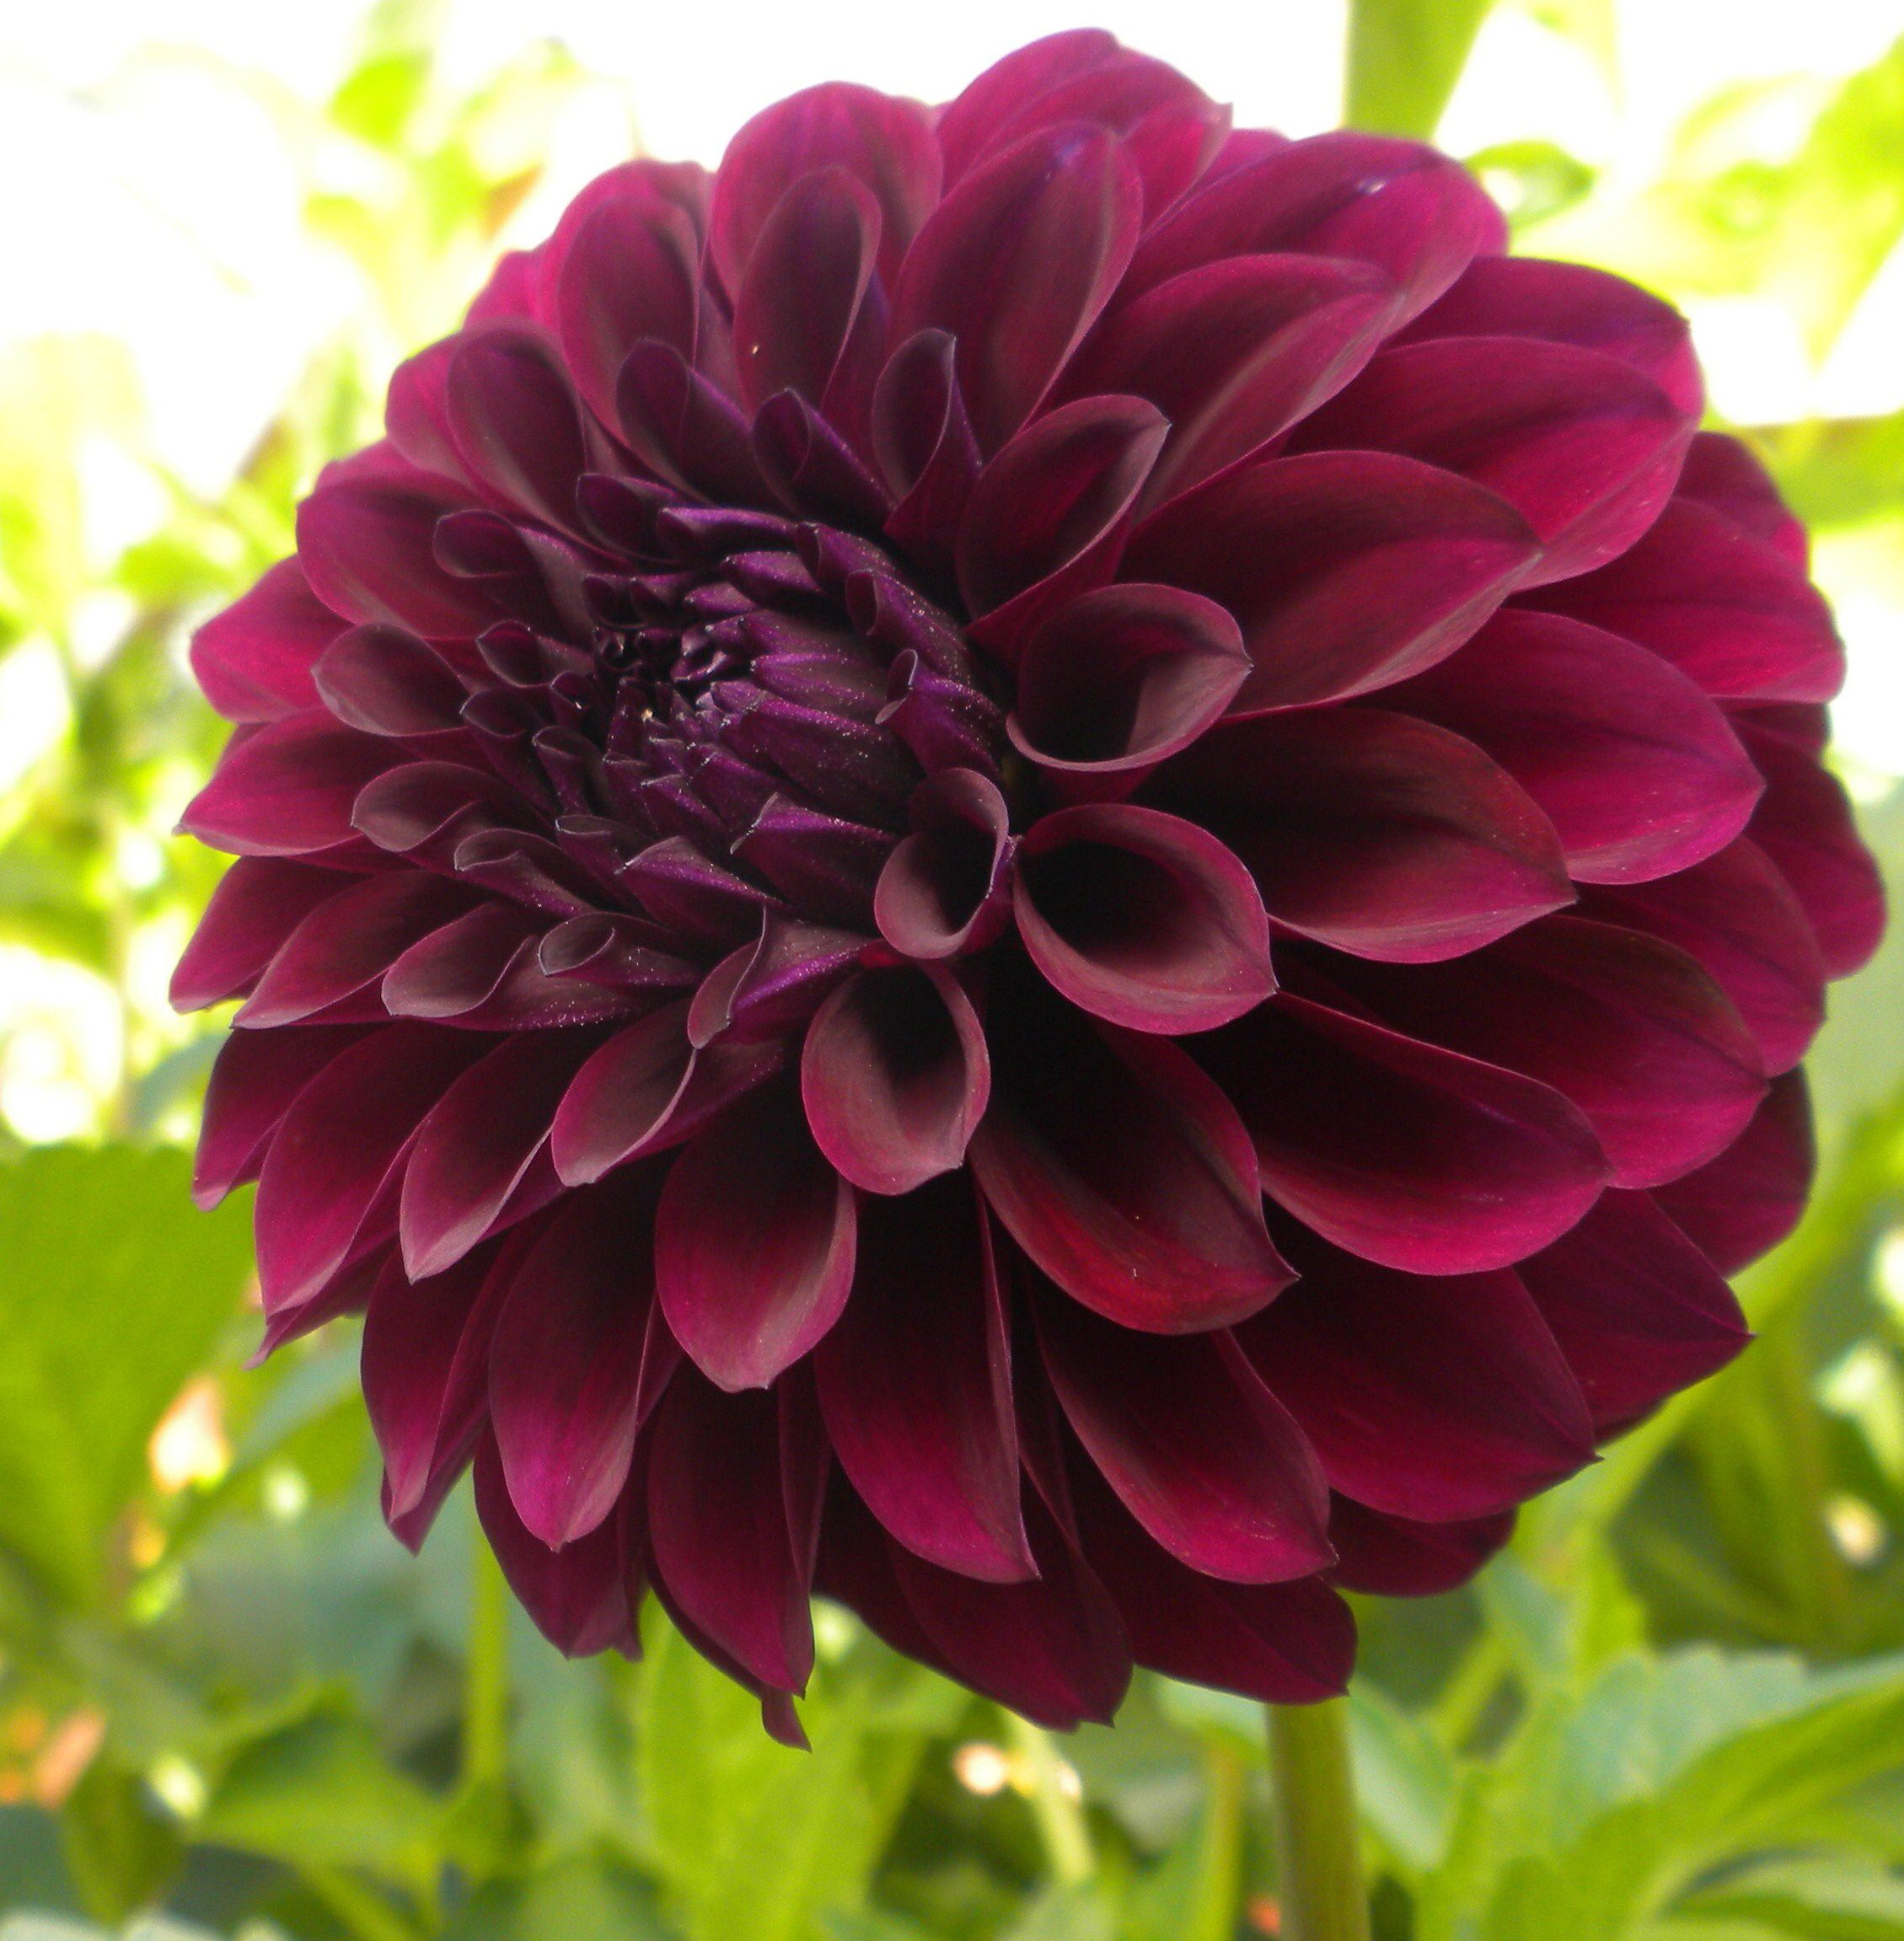 Black Dahlia Dalhia Is Bushy Tuberous Herbaceous Perennials Plants Native From Mexicodalhia Is Bushy Tub Dahlia Flower Pictures Purple Dahlia Dahlia Flower